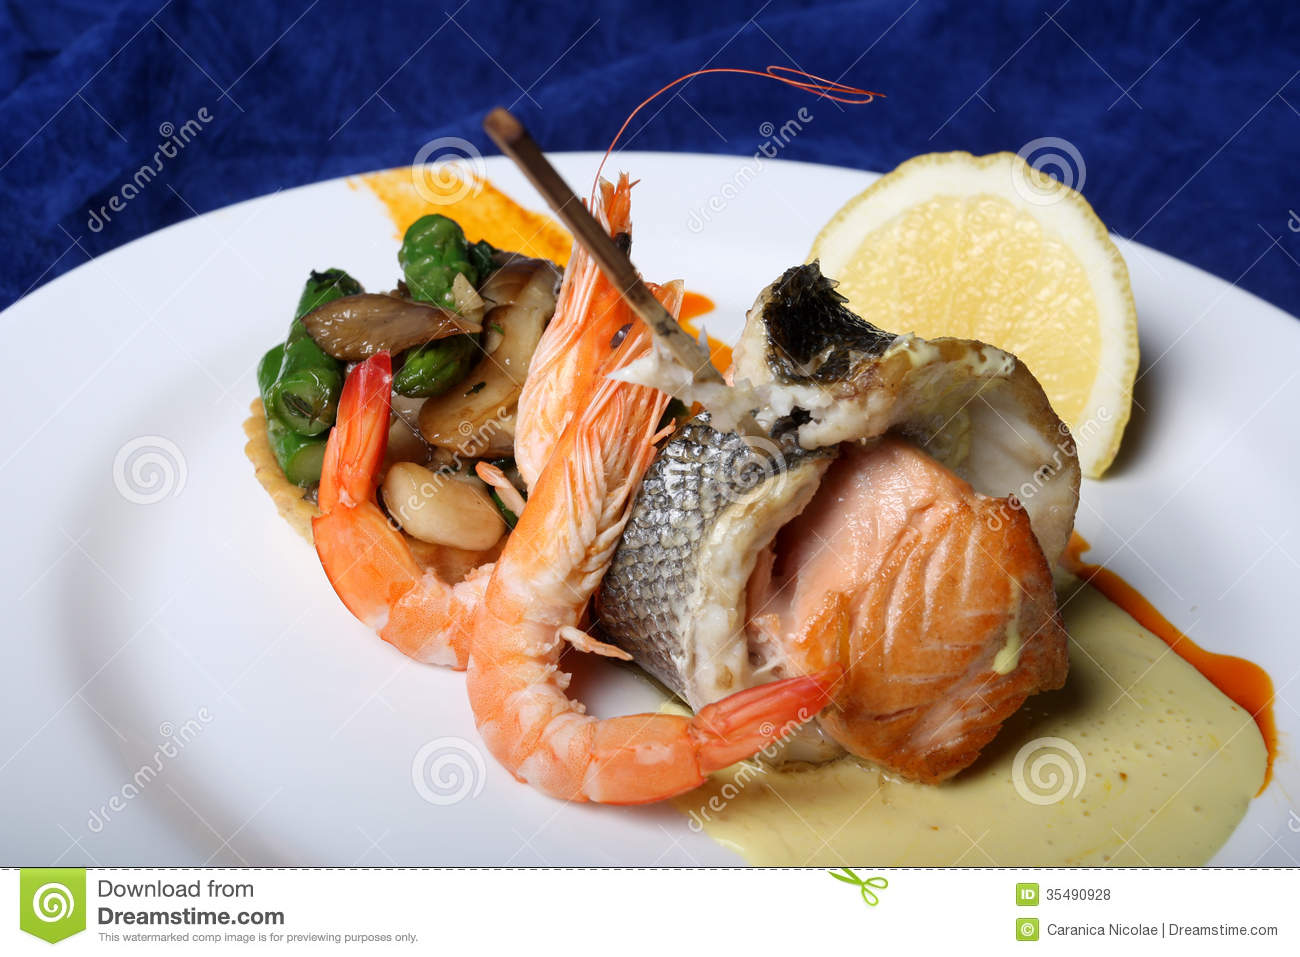 Marine food royalty free stock photos image 35490928 for Saltwater fish food